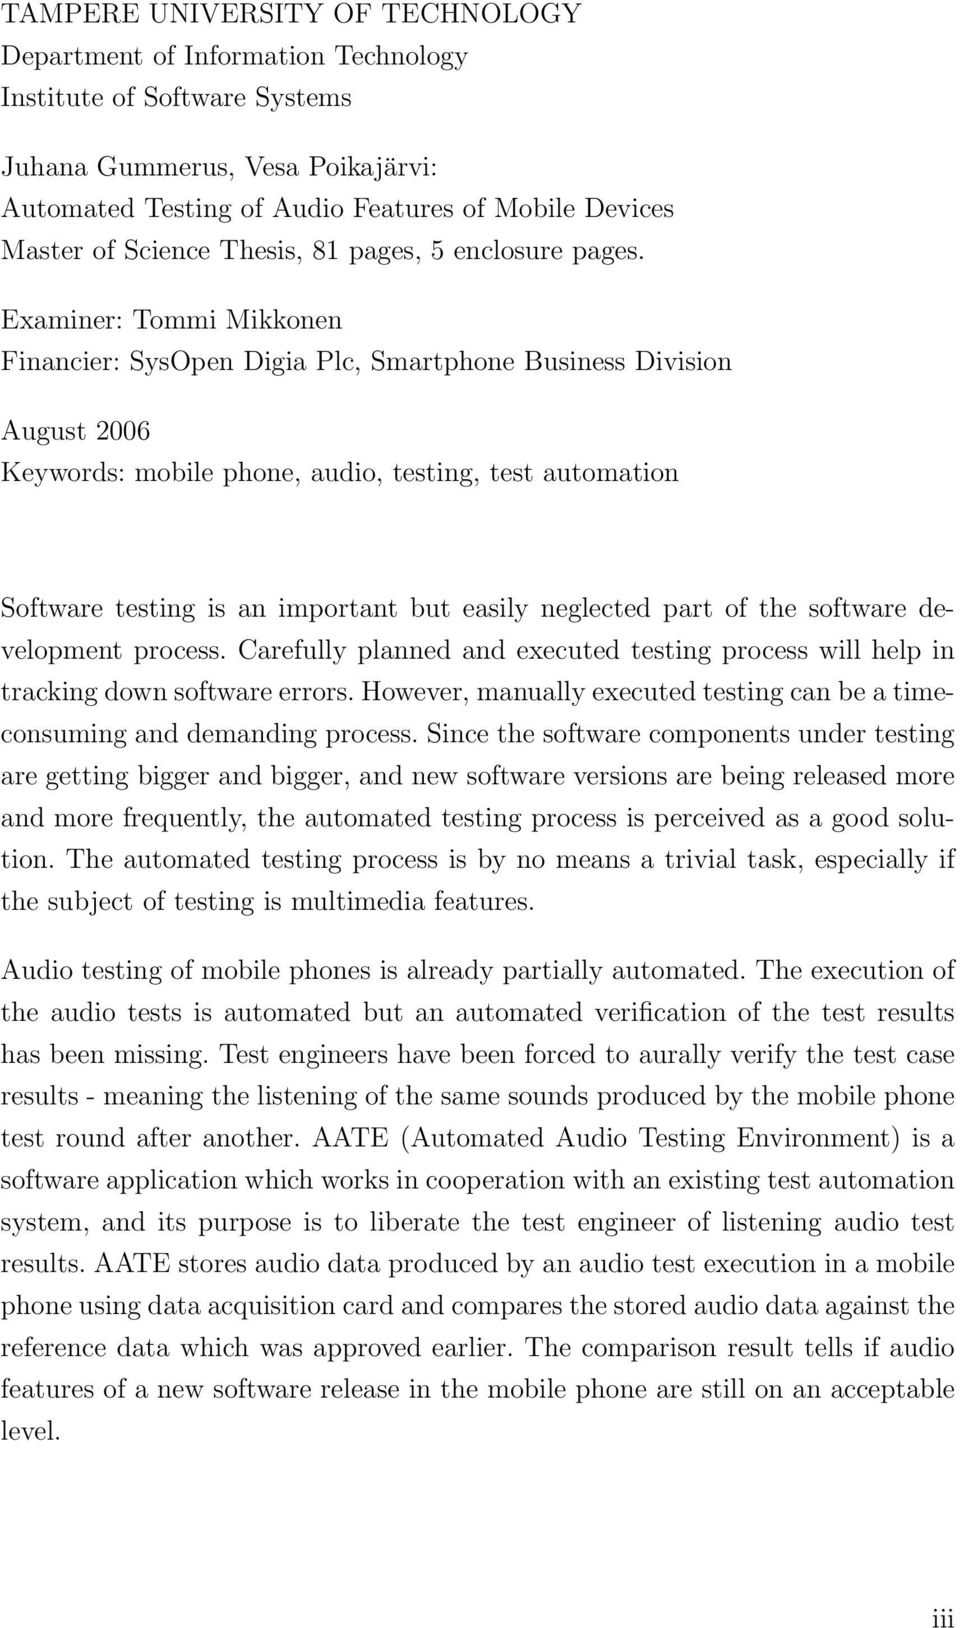 Examiner: Tommi Mikkonen Financier: SysOpen Digia Plc, Smartphone Business Division August 2006 Keywords: mobile phone, audio, testing, test automation Software testing is an important but easily